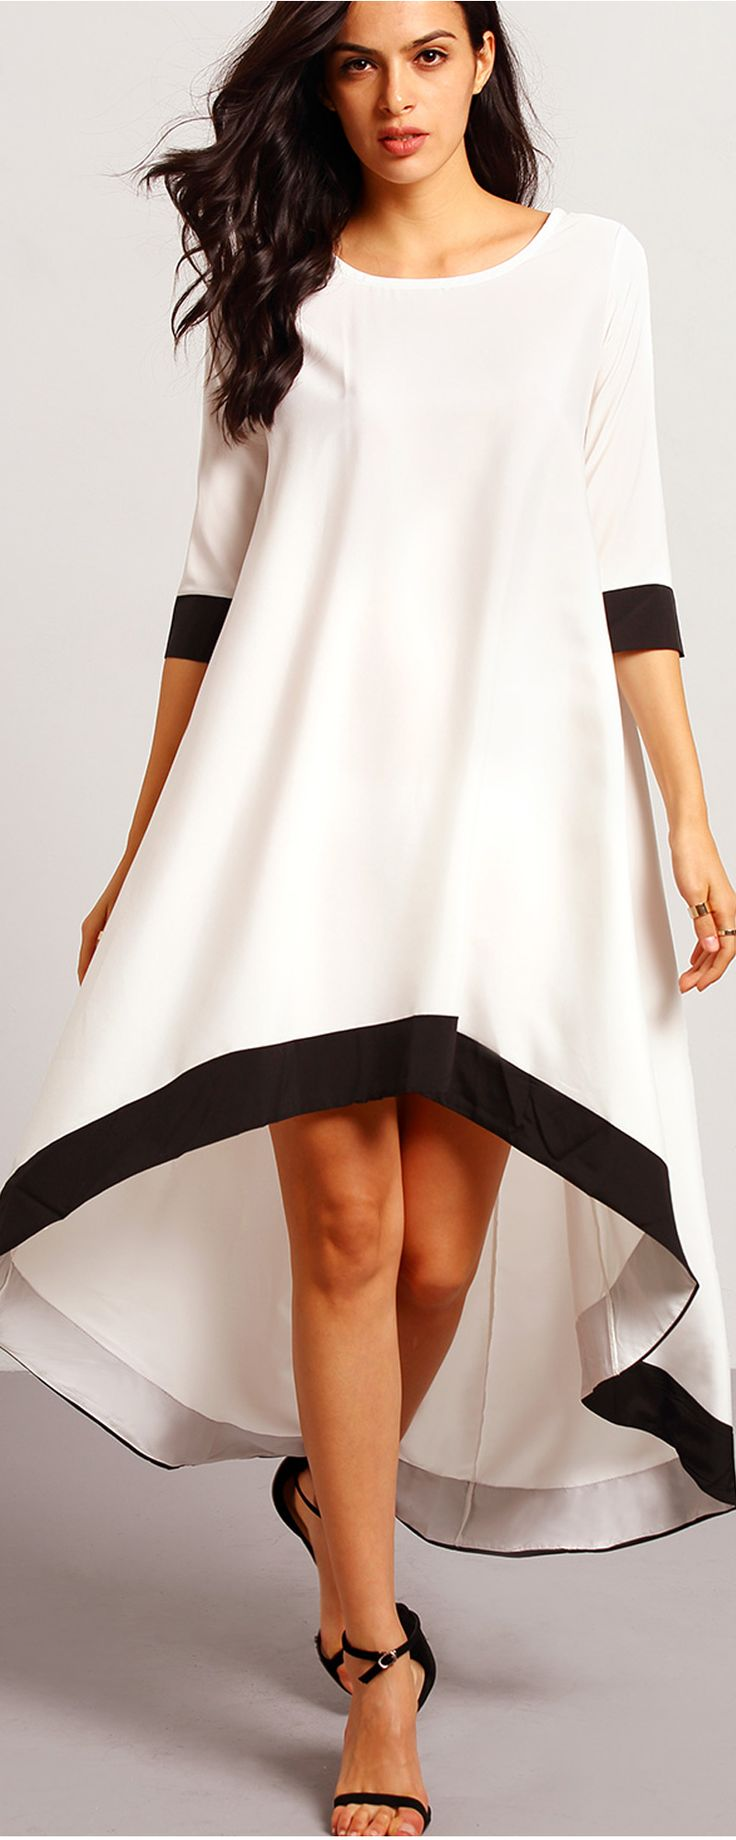 White Round Neck Contrast Trims High Low Dress - m.shein.com